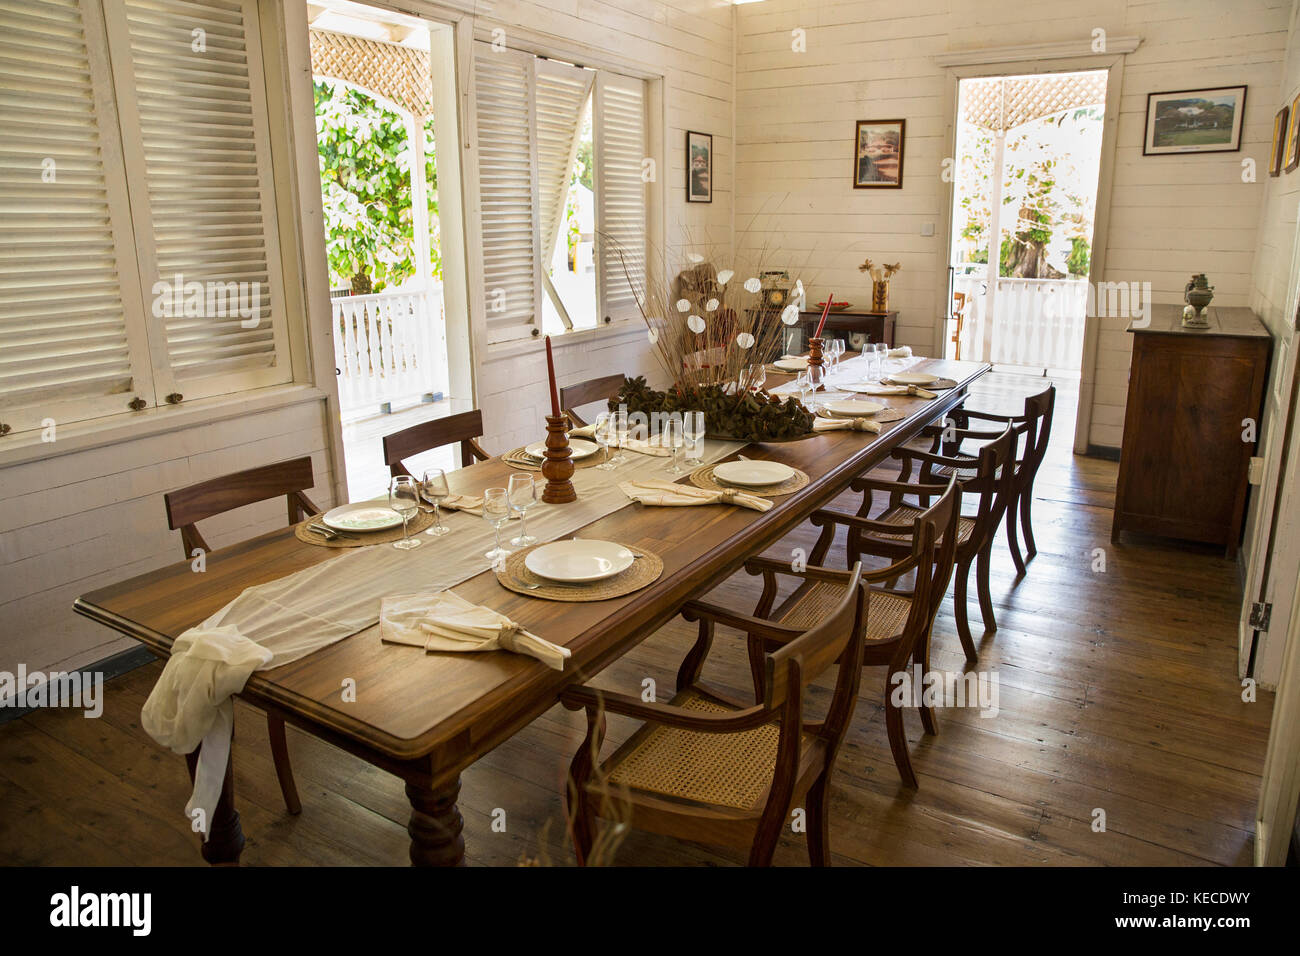 The Seychelles, Mahe, Anse aux Pins, St Roche Au Cap, Domaine Val des Pres Estate House, interior, dining room - Stock Image